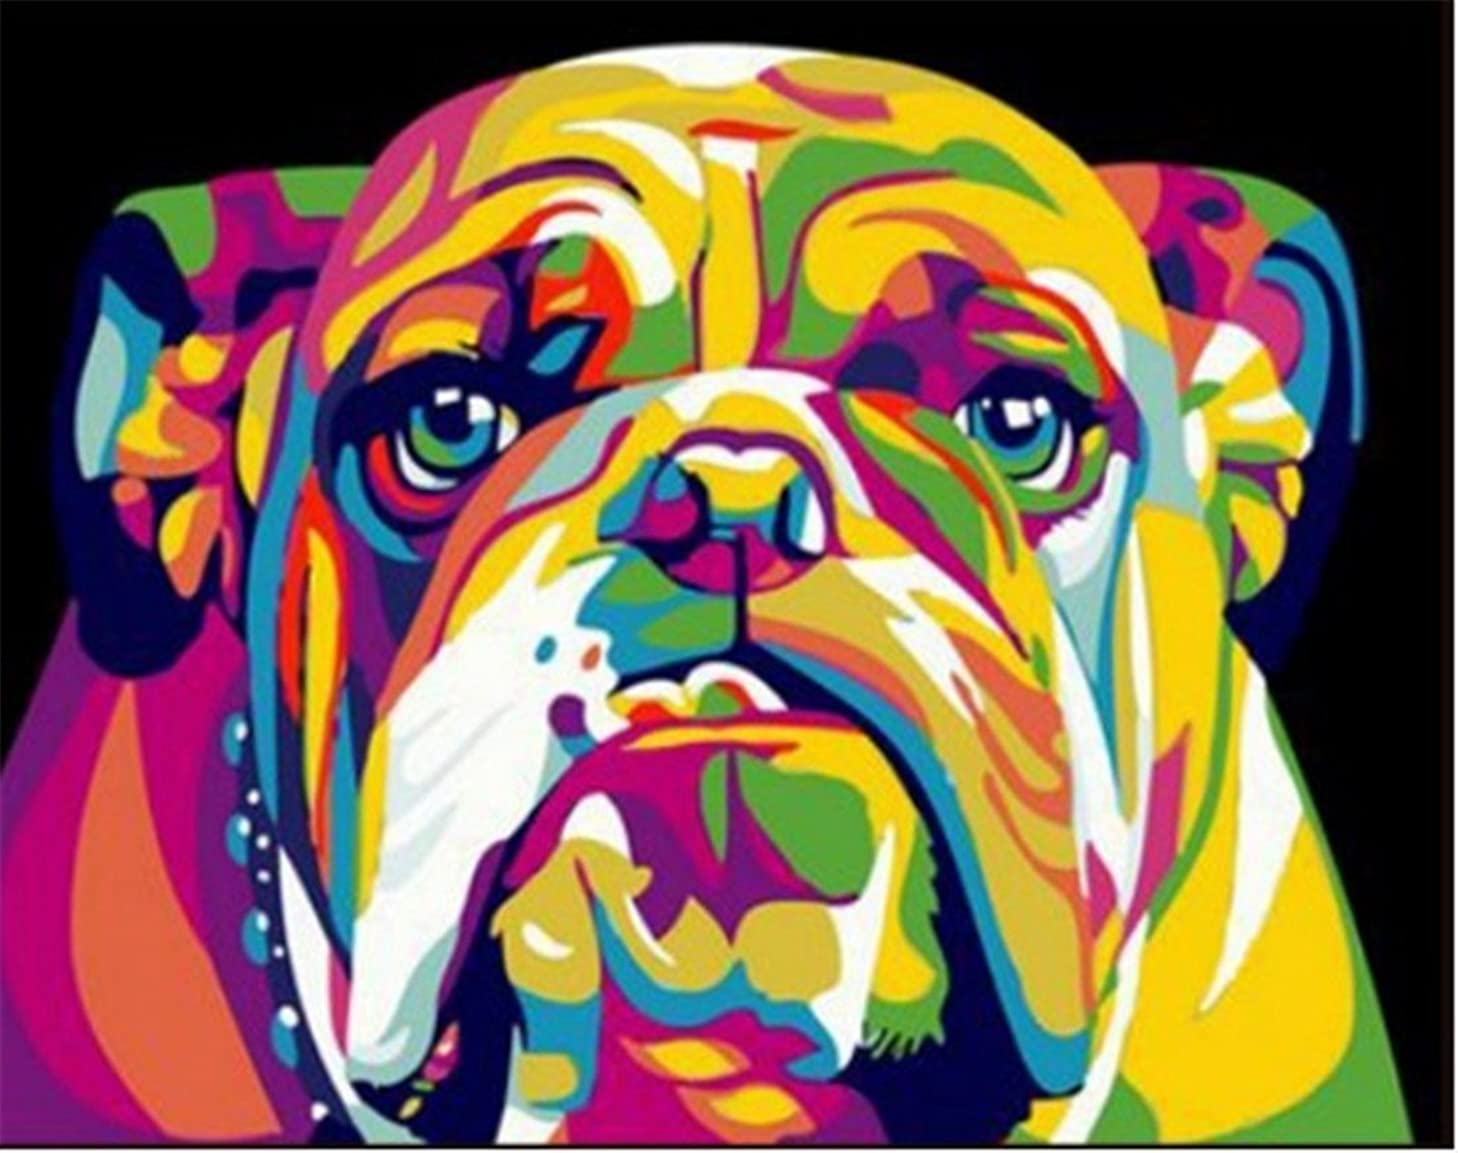 YEESAM Art New DIY Paint by Number Kits for Adults Kids Beginner - Colorful Dog Head 16x20 inch Linen Canvas - Stress Less Number Painting Gifts (with Frame)